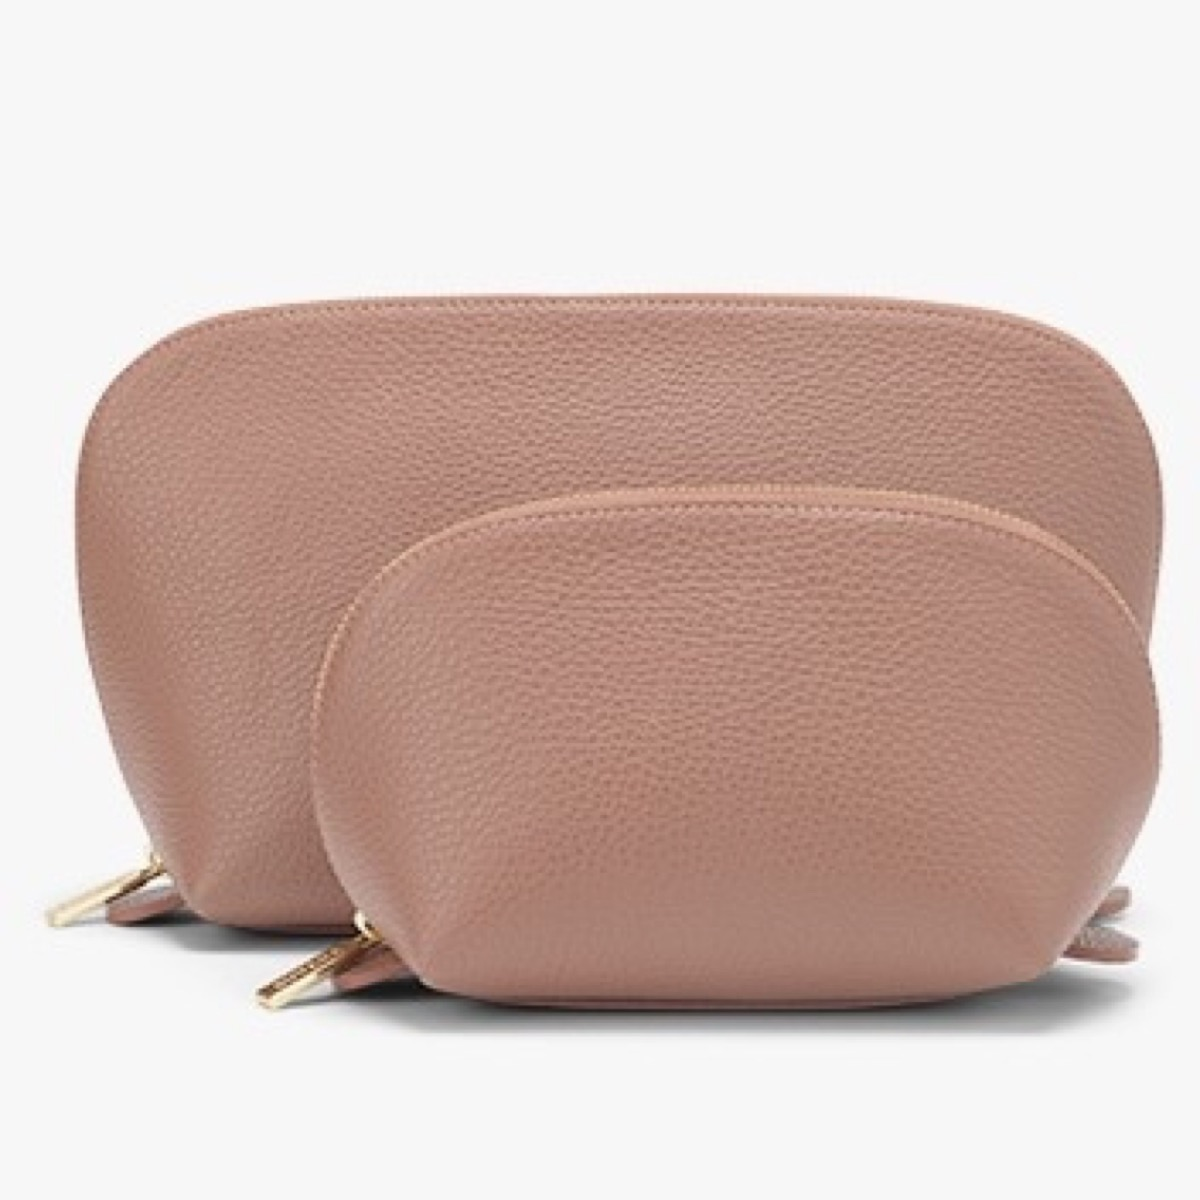 cuyana essential travel case set, gifts for girlfriend